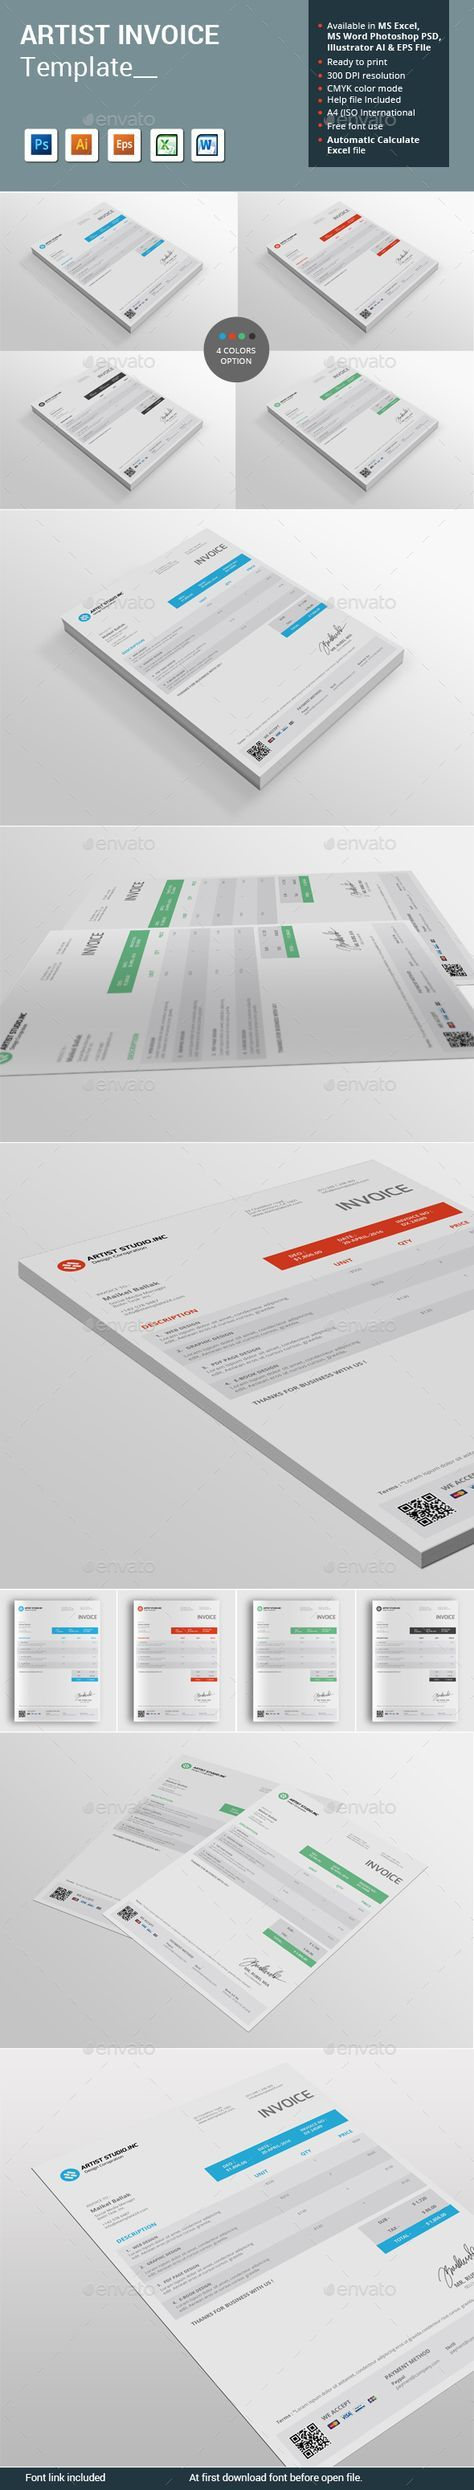 how to create a proposal template in word%0A Artist Invoice Template